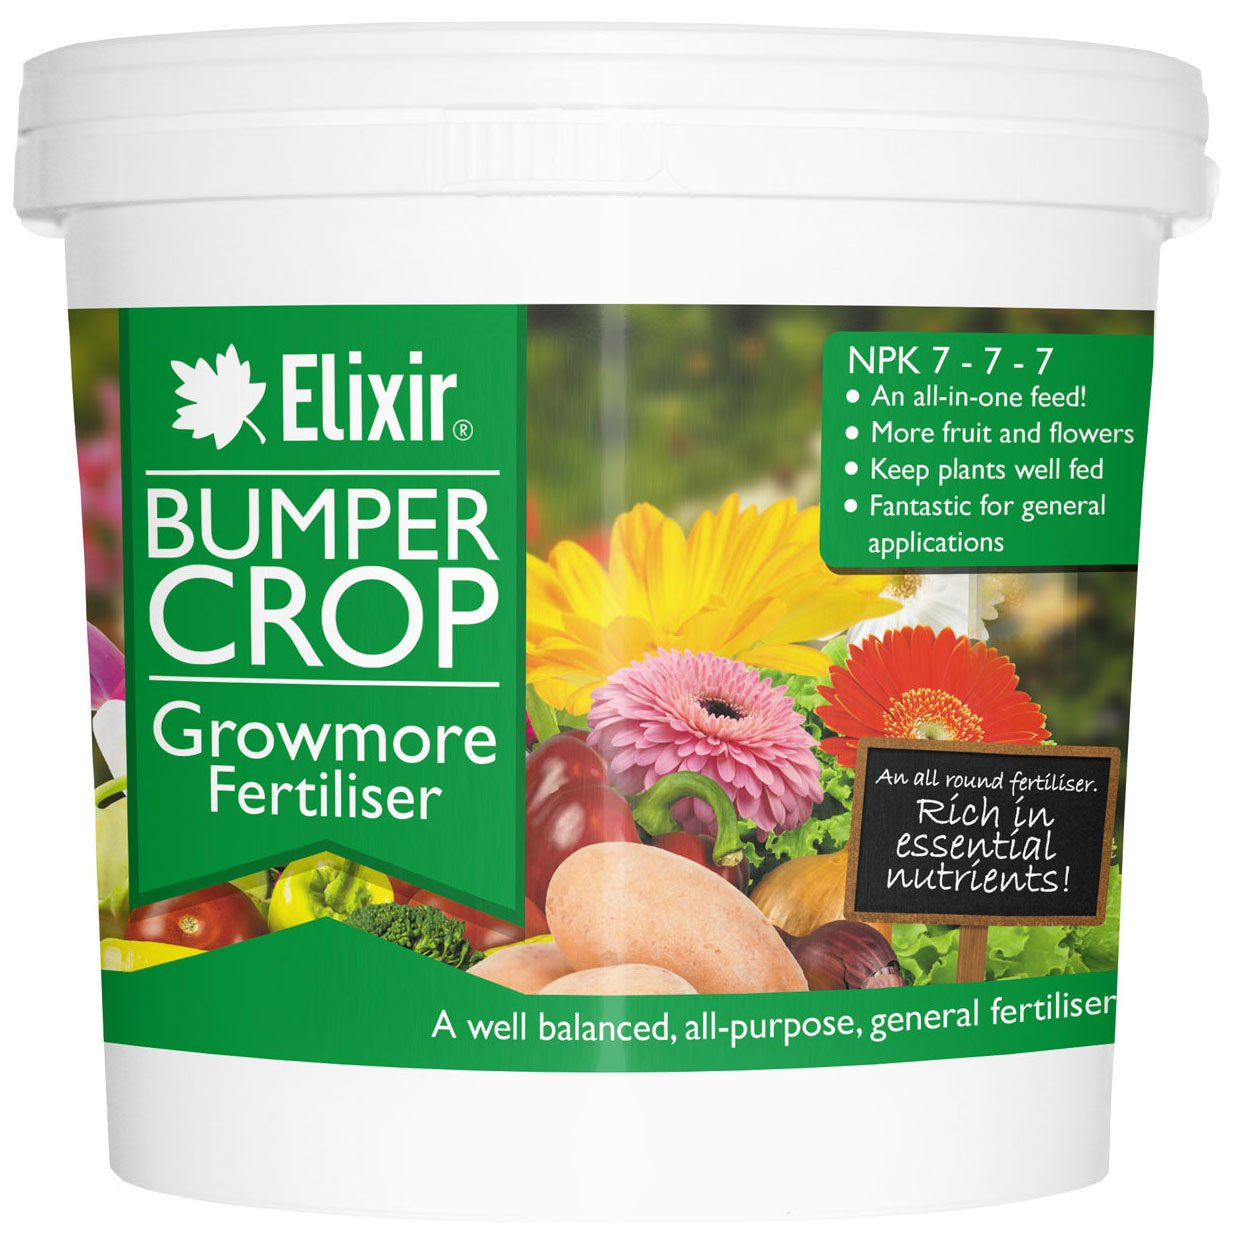 Elixir Gardens Bumper Crop Growmore Fertiliser | 1kg, Supplied in Polythene Bag Elixir Gardens ®